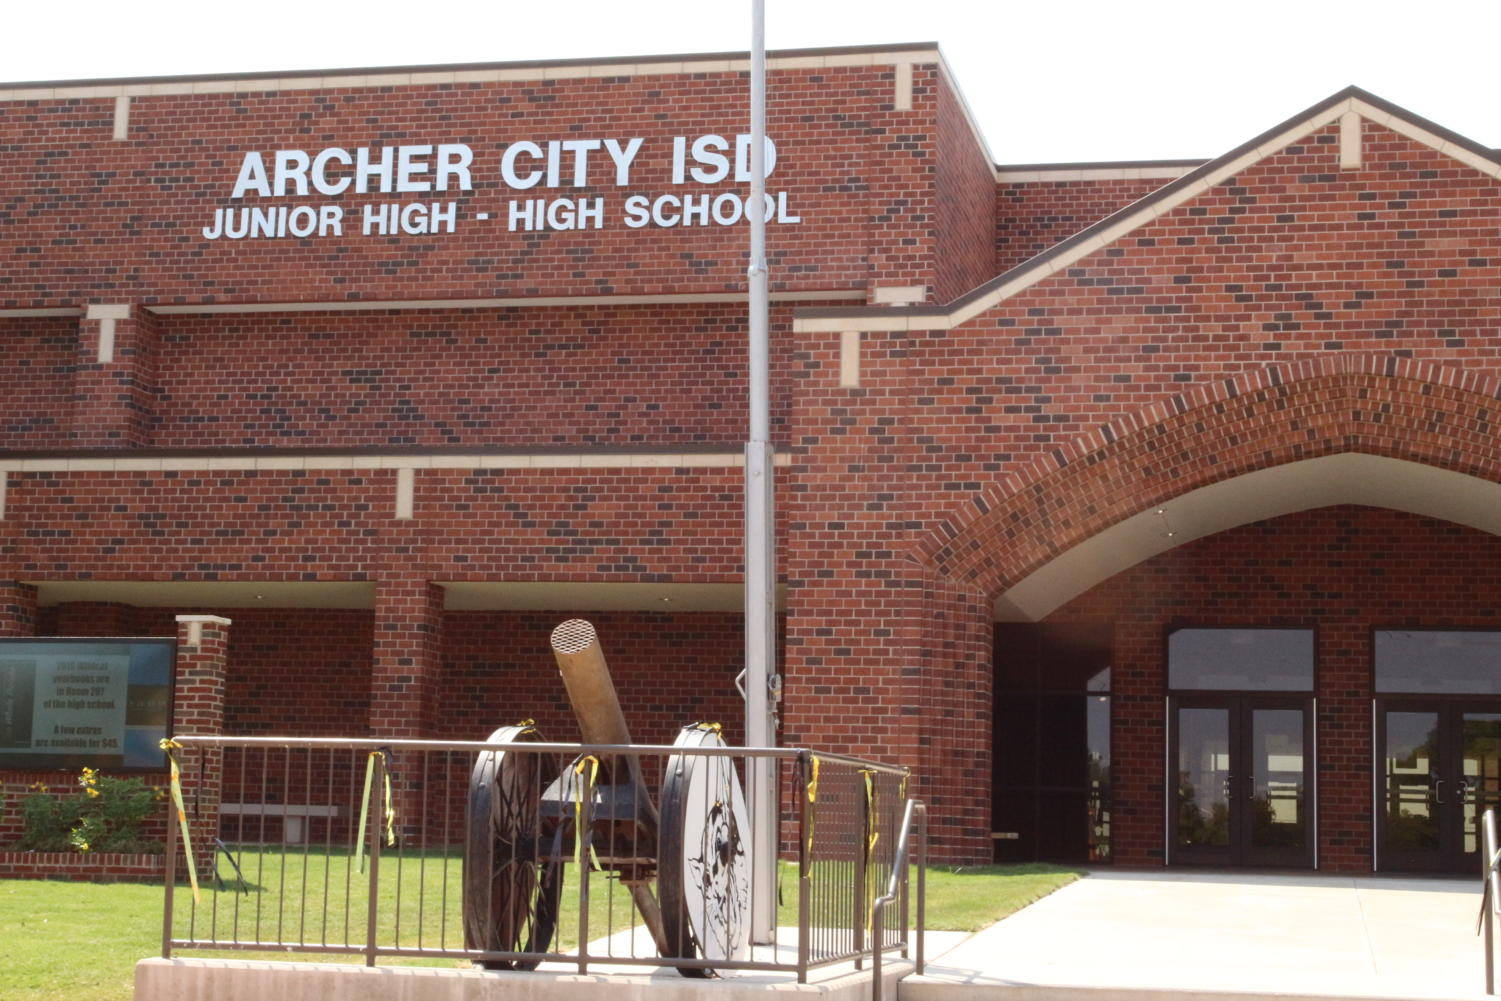 Archer City High School